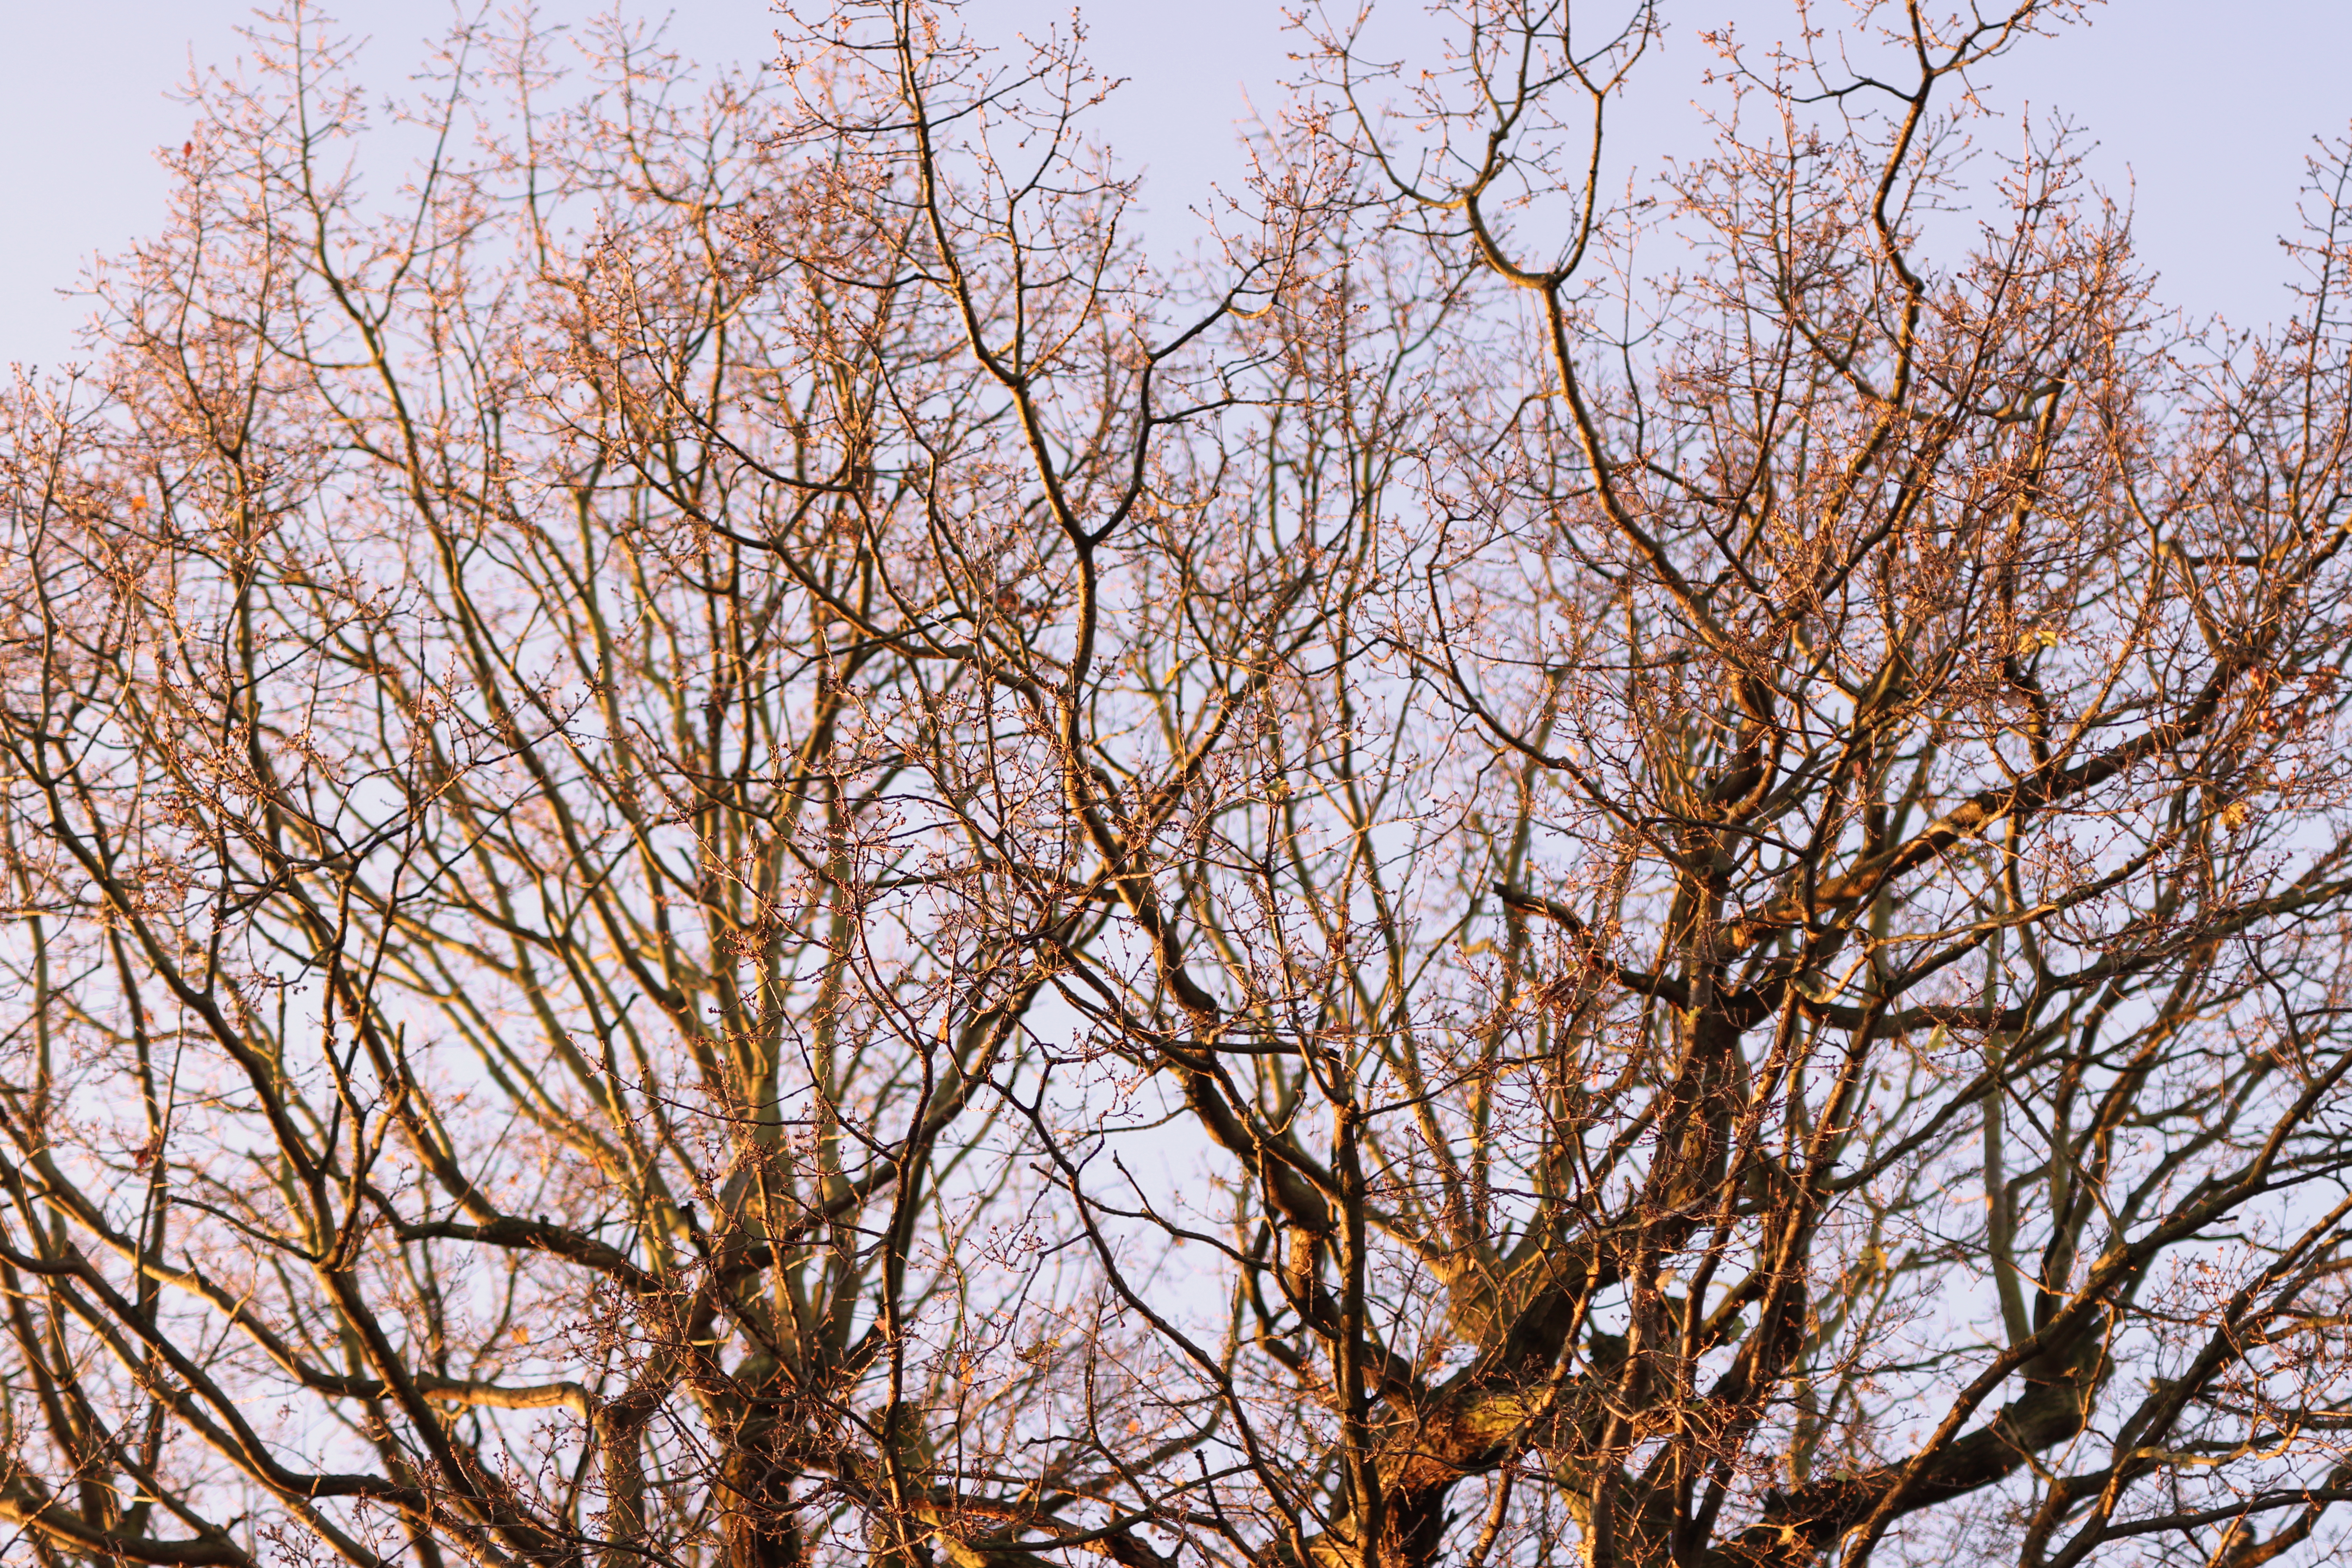 The bare winter branches of the top of an oak tree canopy